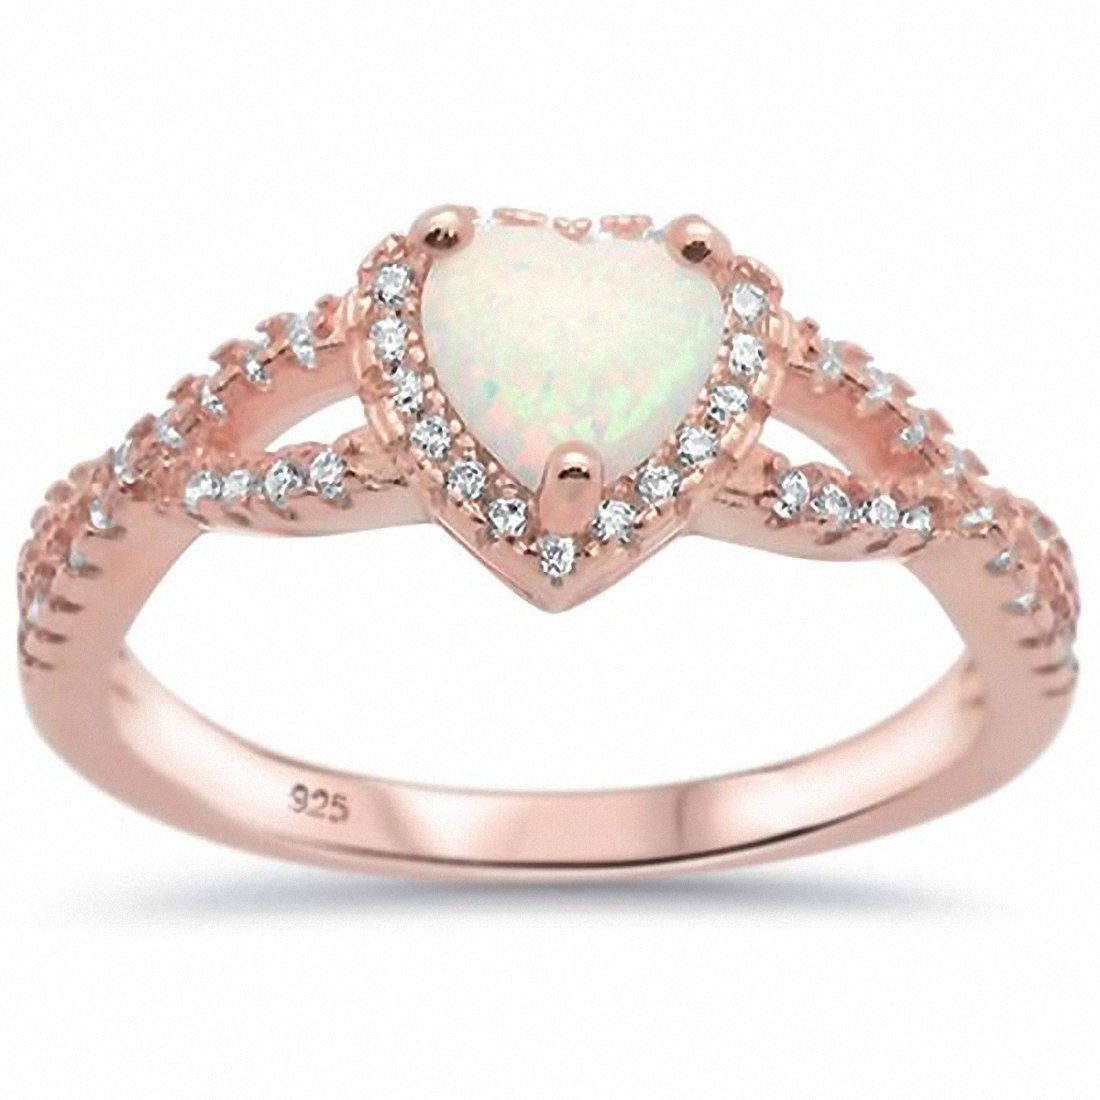 Halo Infinity Shank Heart Ring Rose Tone, Lab Created White Opal 925 Sterling Silver